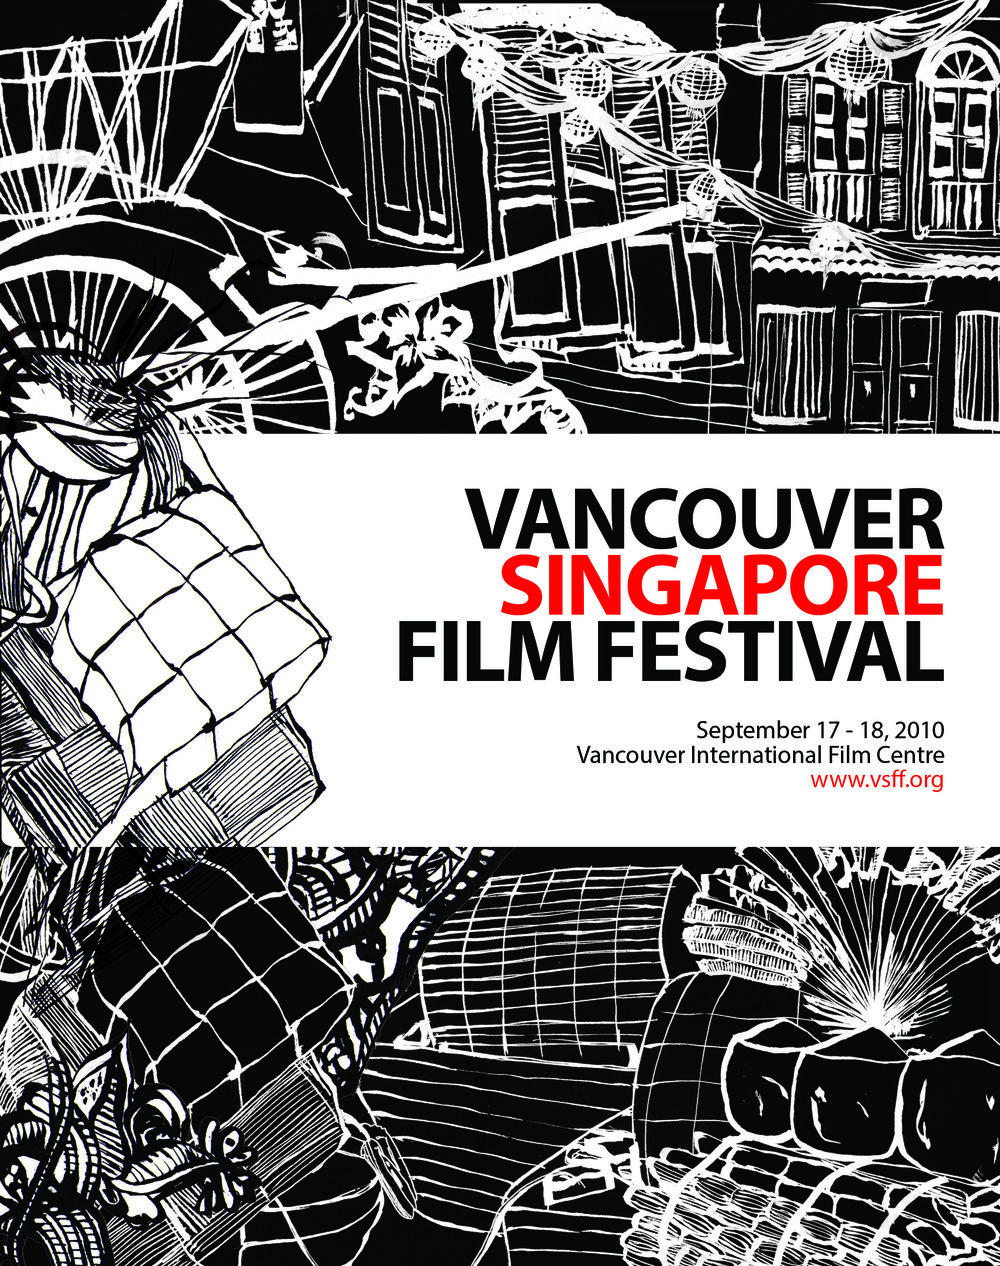 Vancouver Singapore Film Festival Program Cover